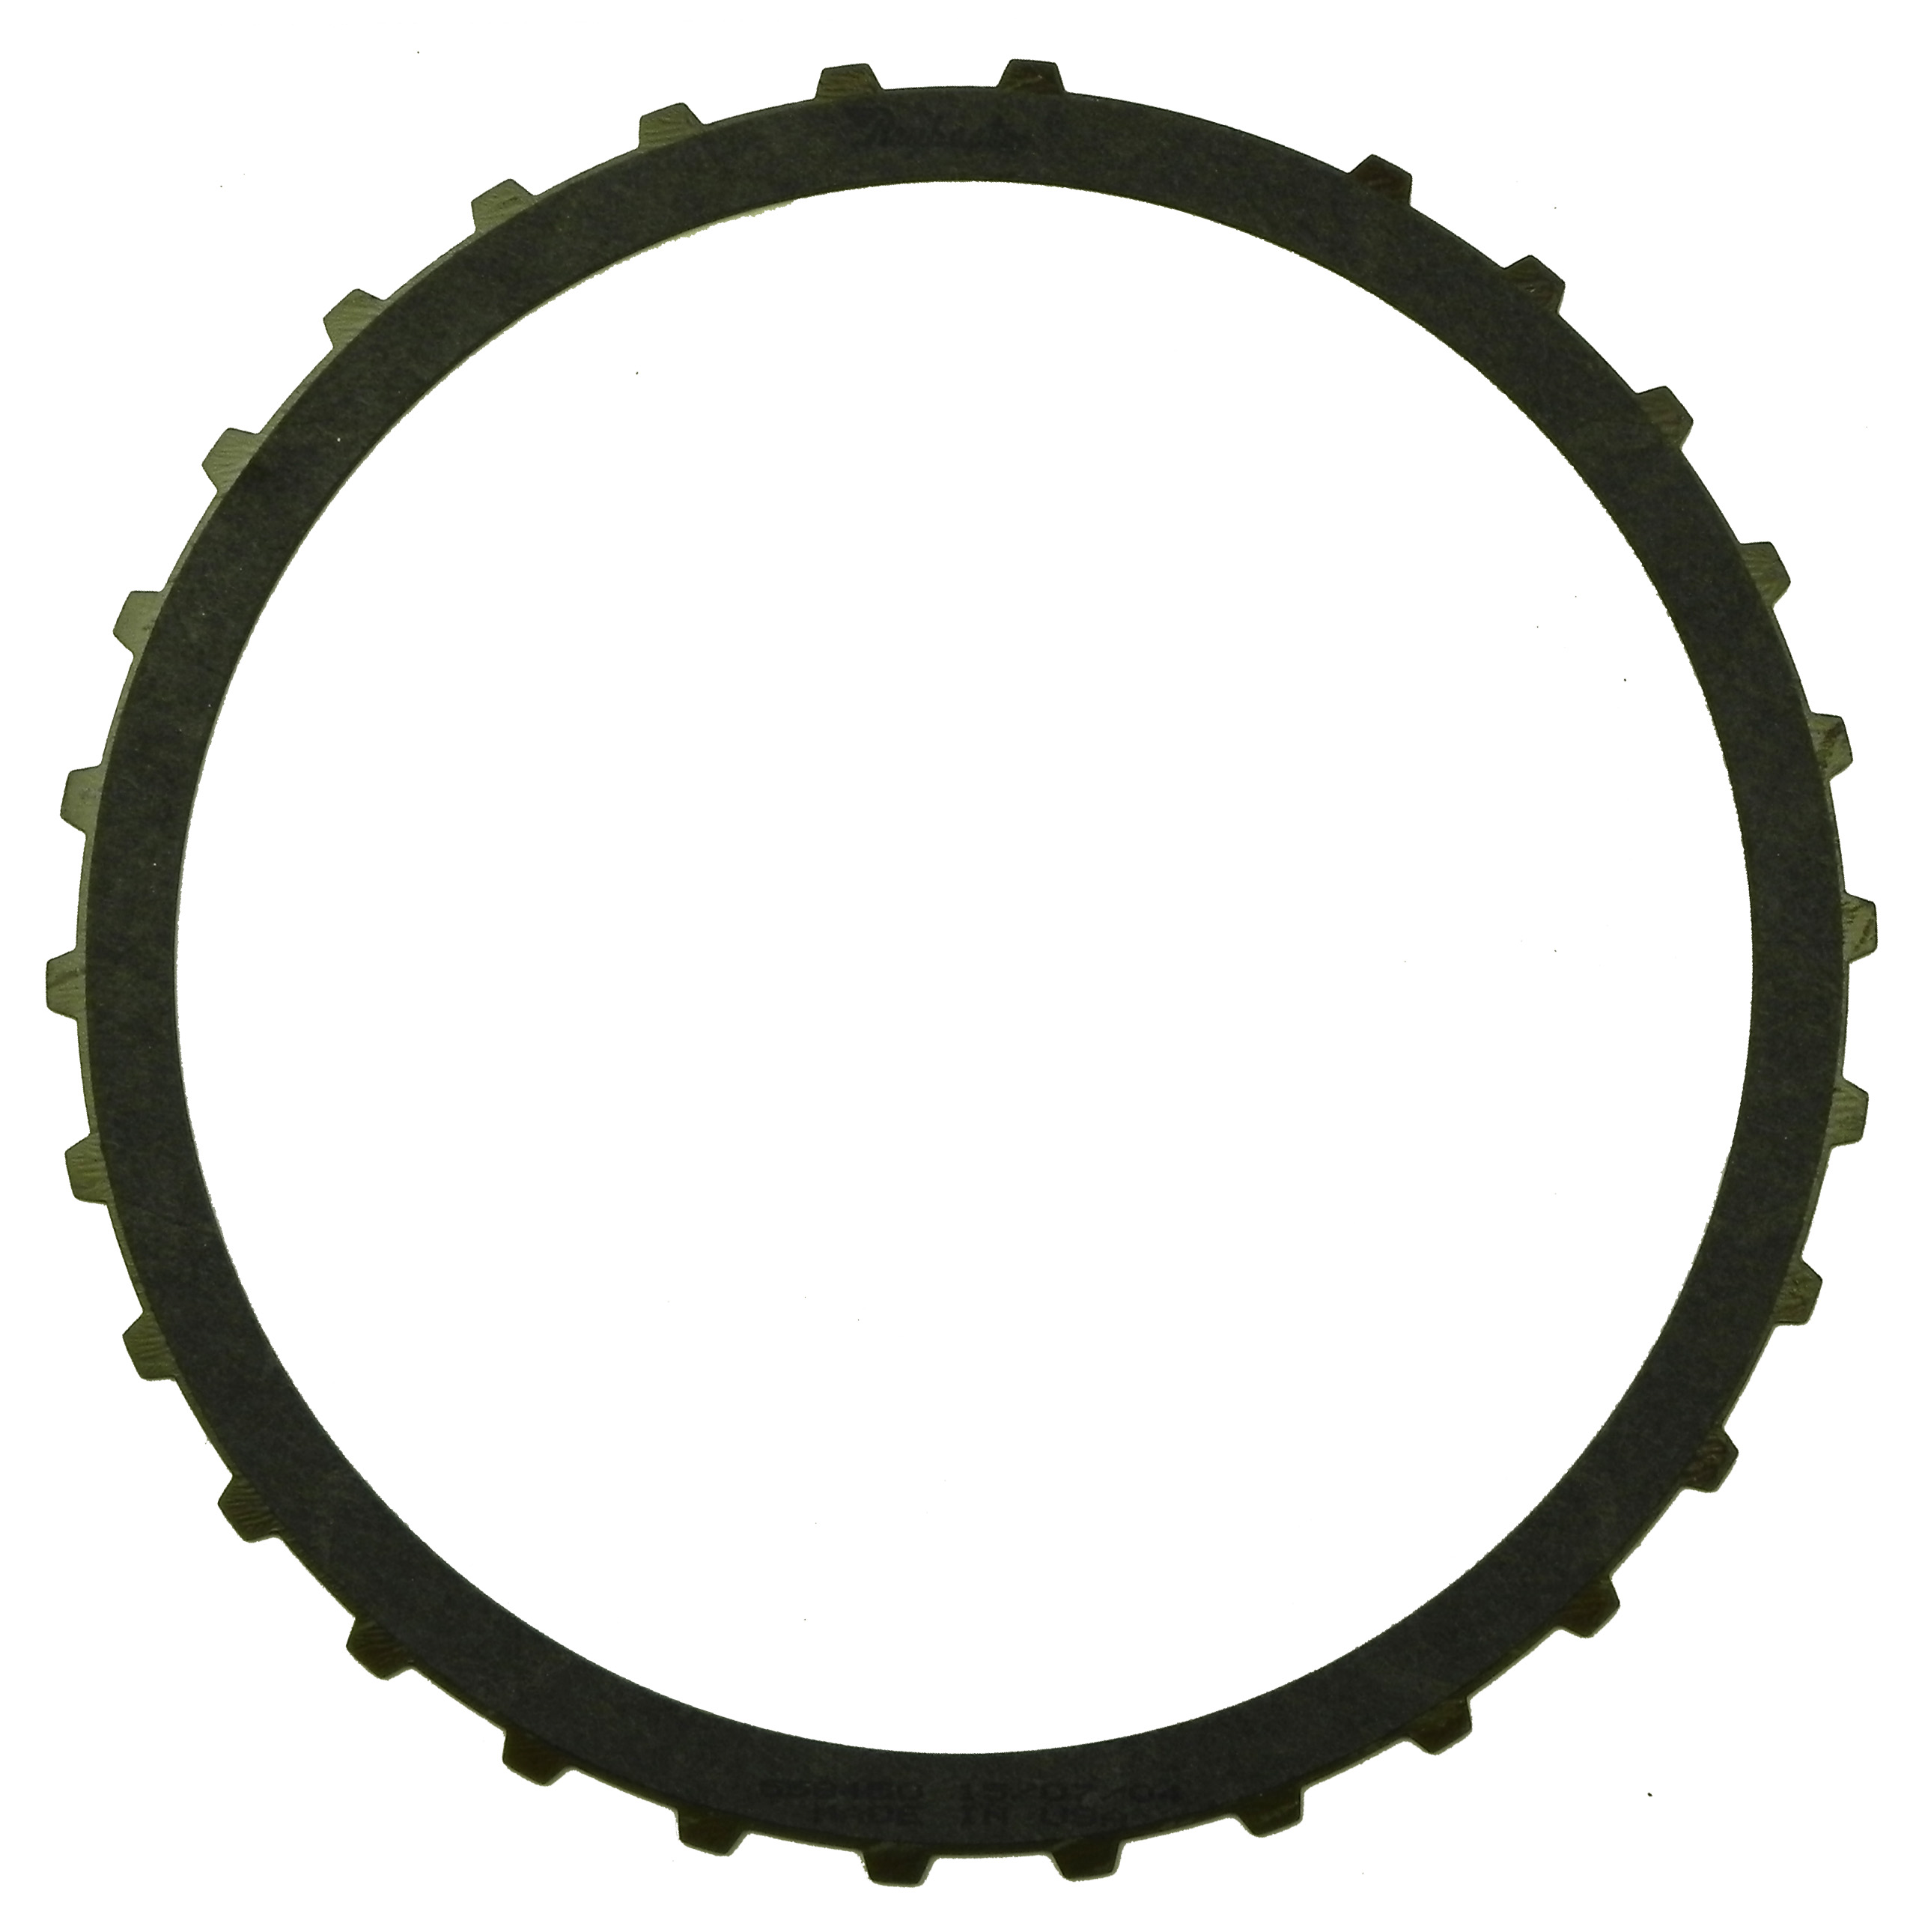 R558450 | 1999-ON Friction Clutch Plate High Energy Low, Reverse, Single Sided, OD Spline High Energy